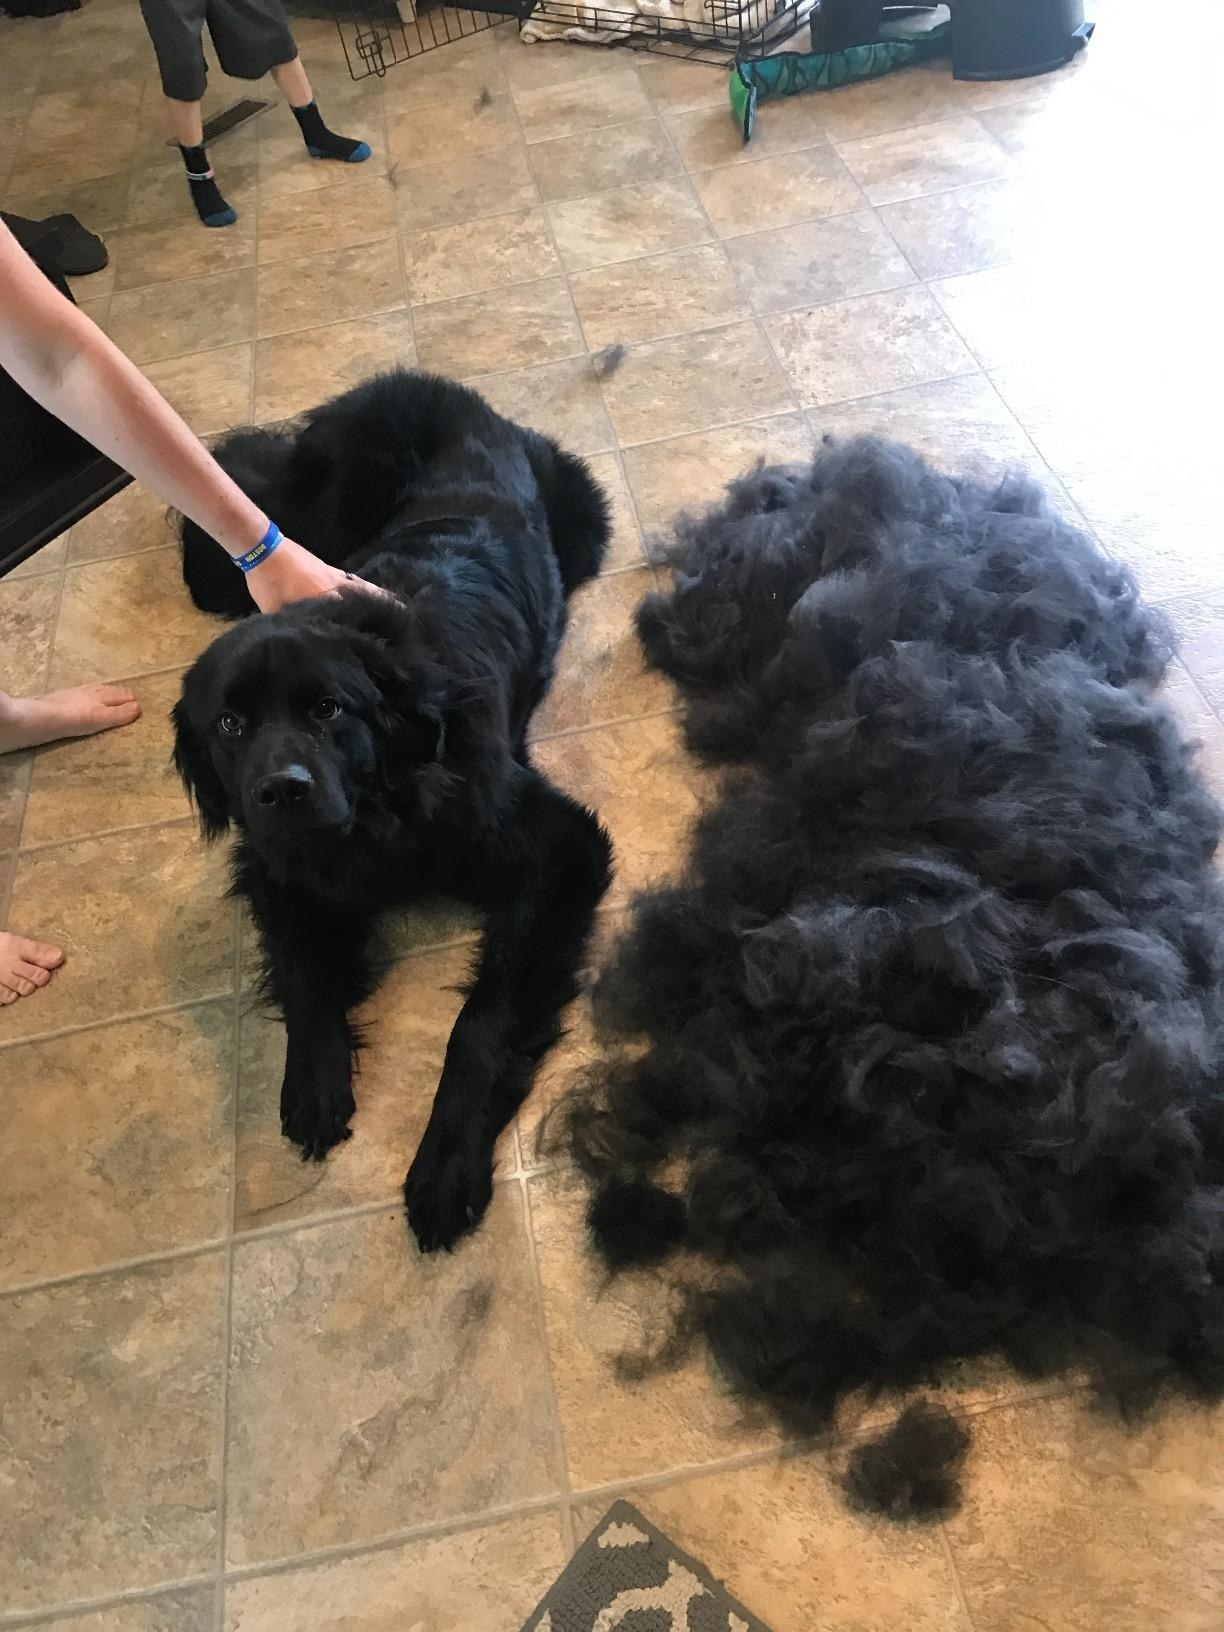 Reviewer's photo of their black dog beside a pile of his fur after using the grooming tool